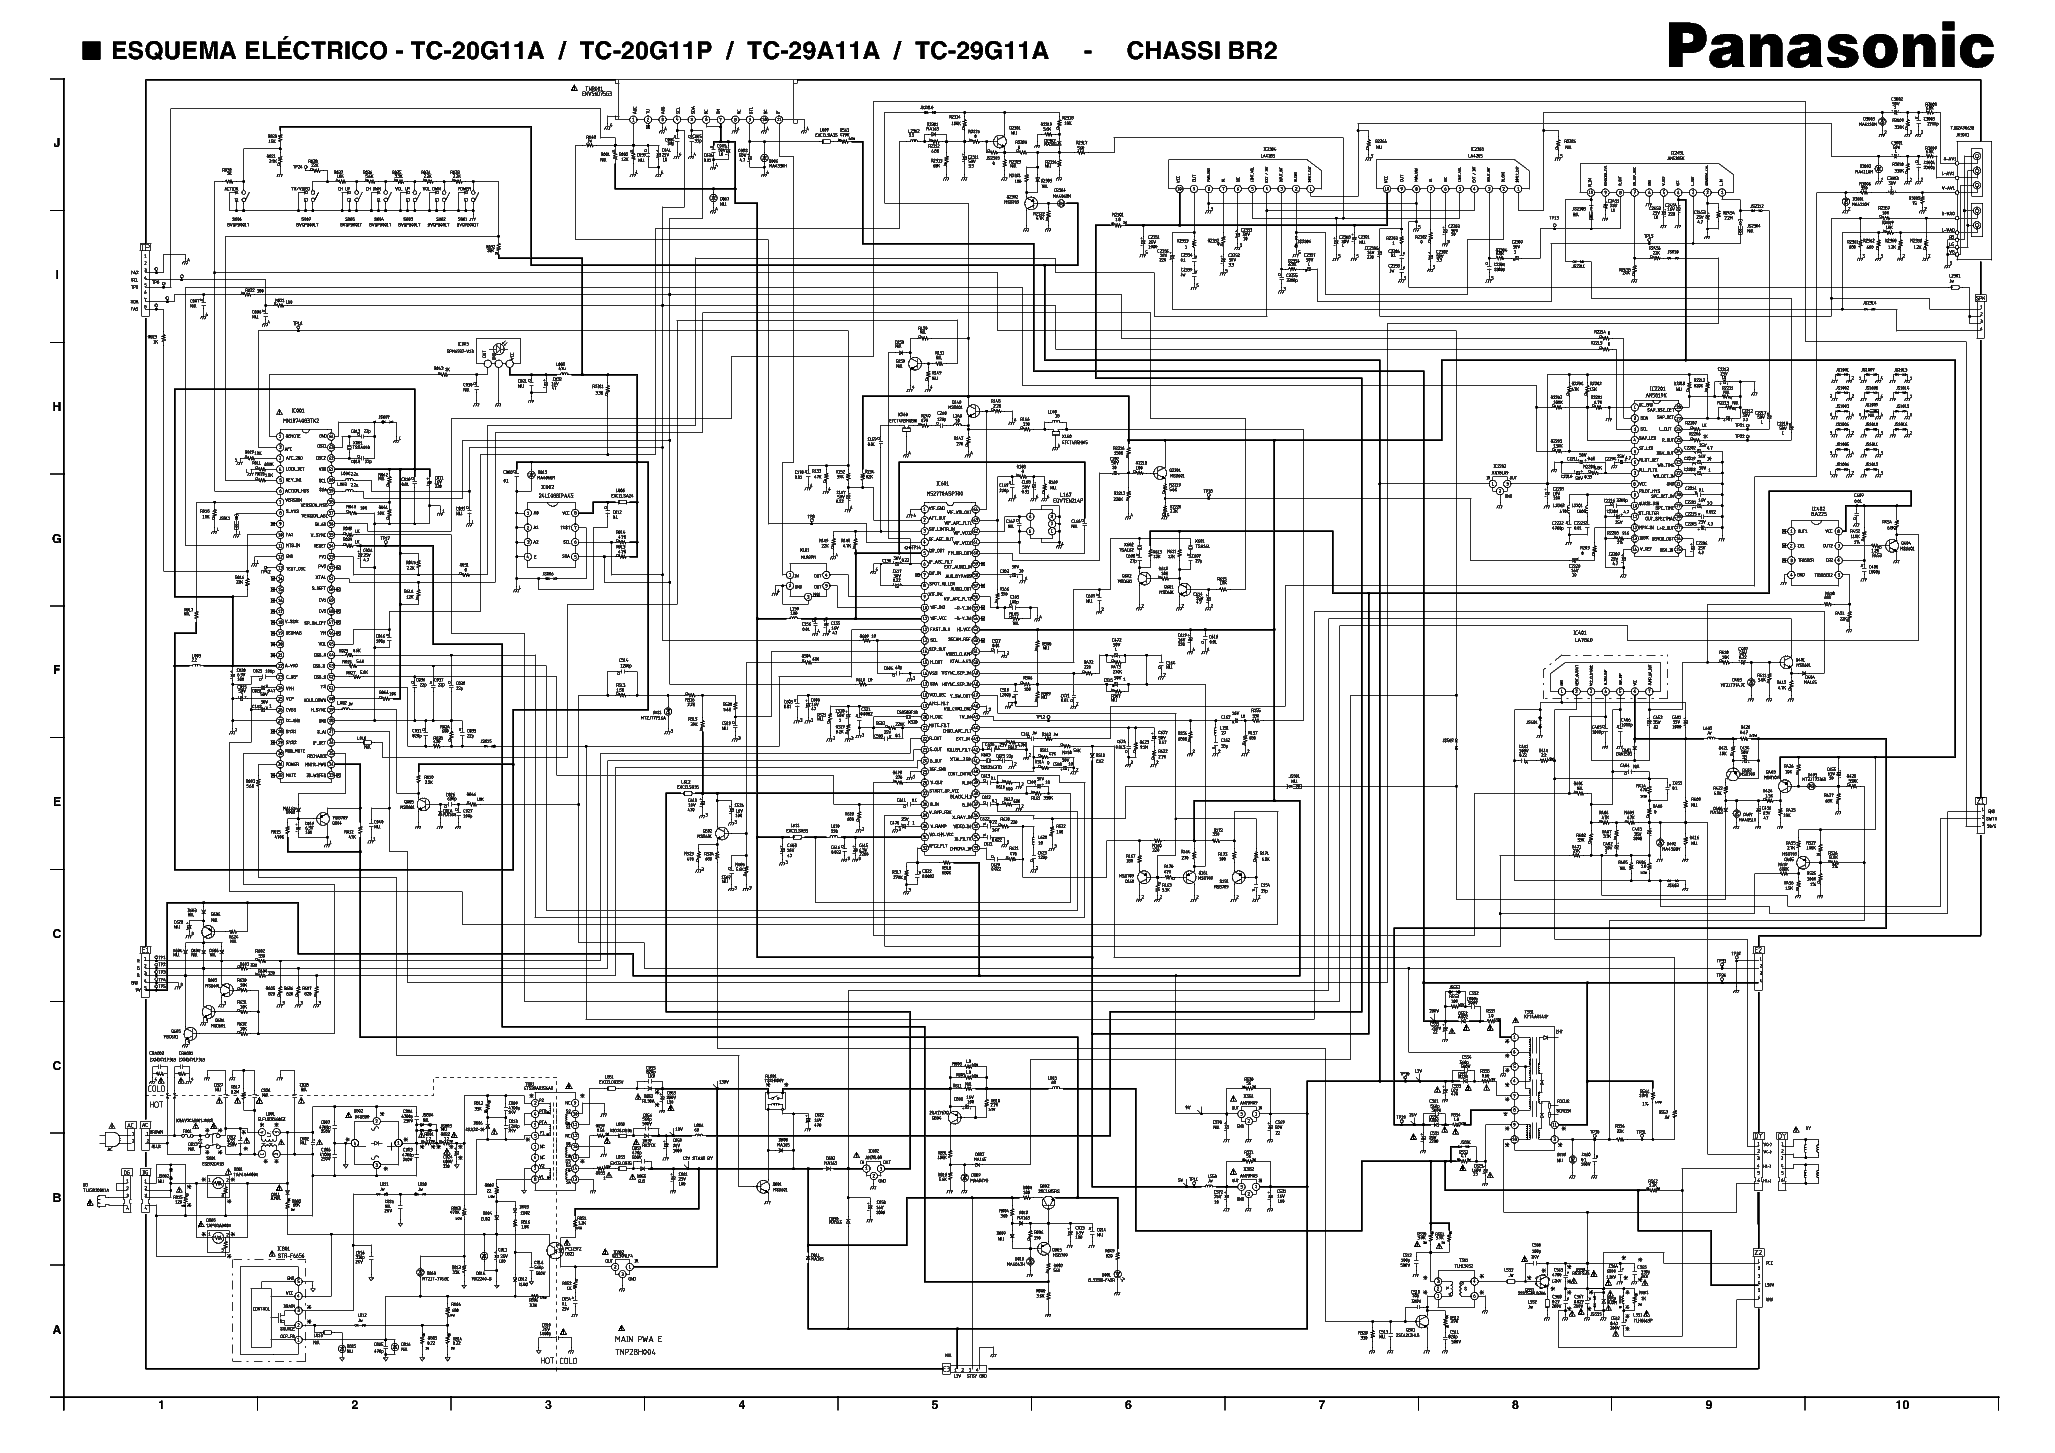 Park Neutral Switch Location Free Download Wiring Diagram Schematic